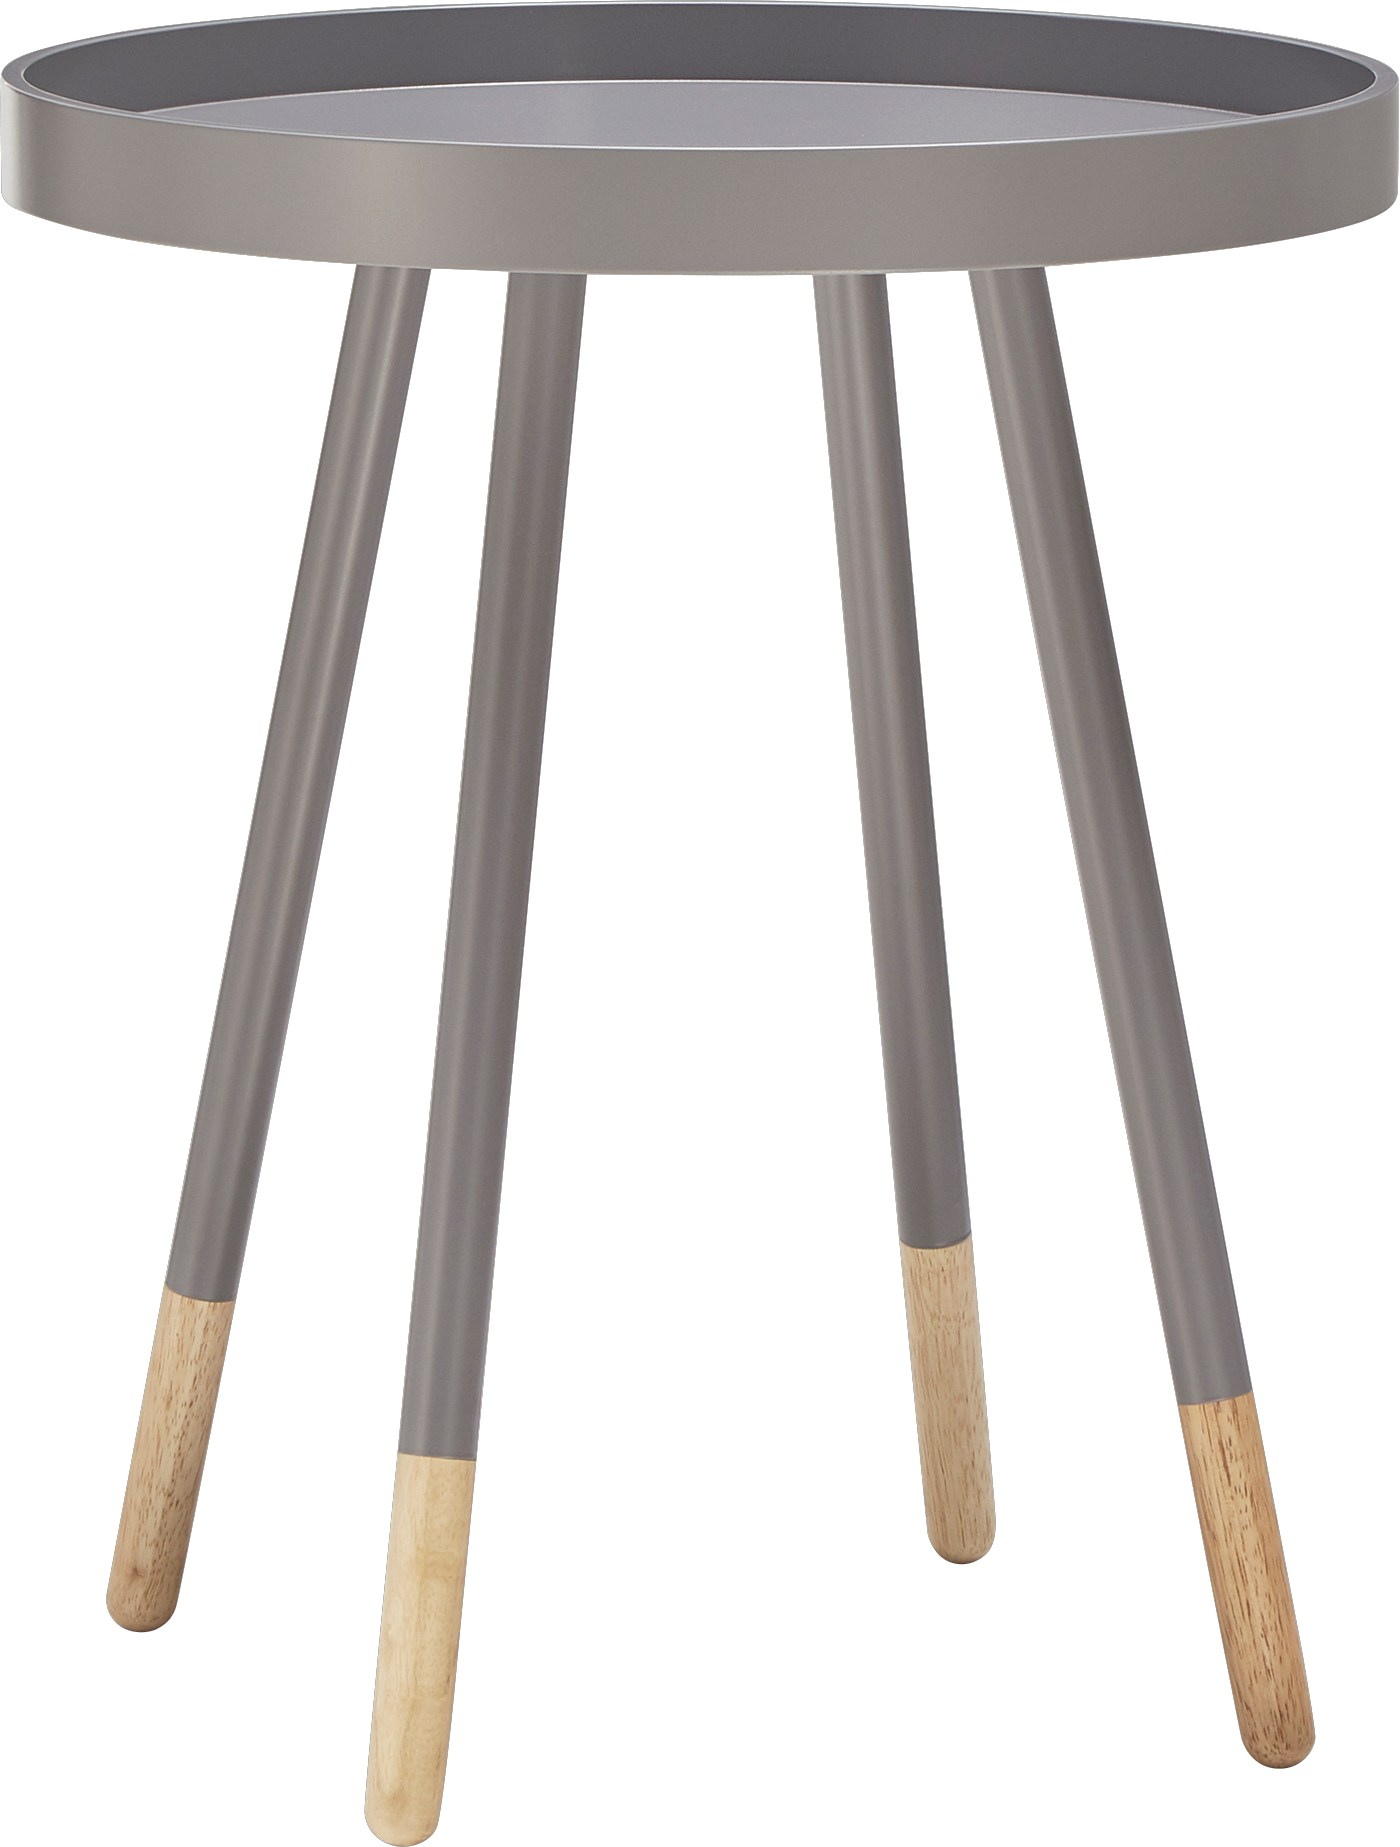 sibley lane gray accent table items colors sibleylane wood long counter height nightstand yellow pieces kitchen cupboards folding chair mini coffee patio umbrella base leick